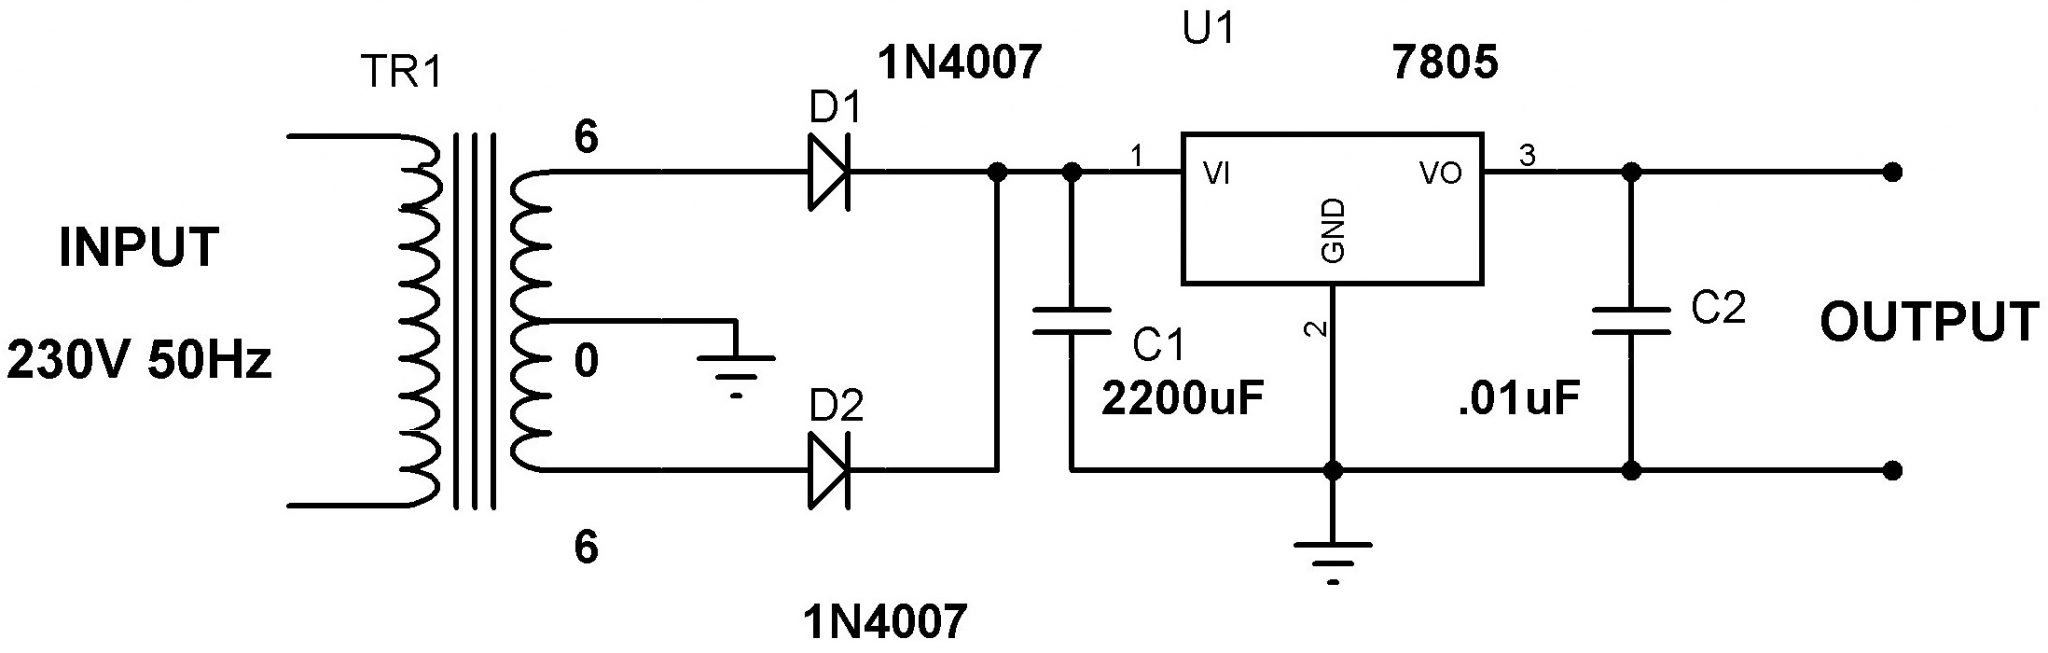 5v power supply using 7805 voltage regulator with design rh electrosome com power supply circuit diagram 12v 5a power supply circuit diagram using 7805 and 7812